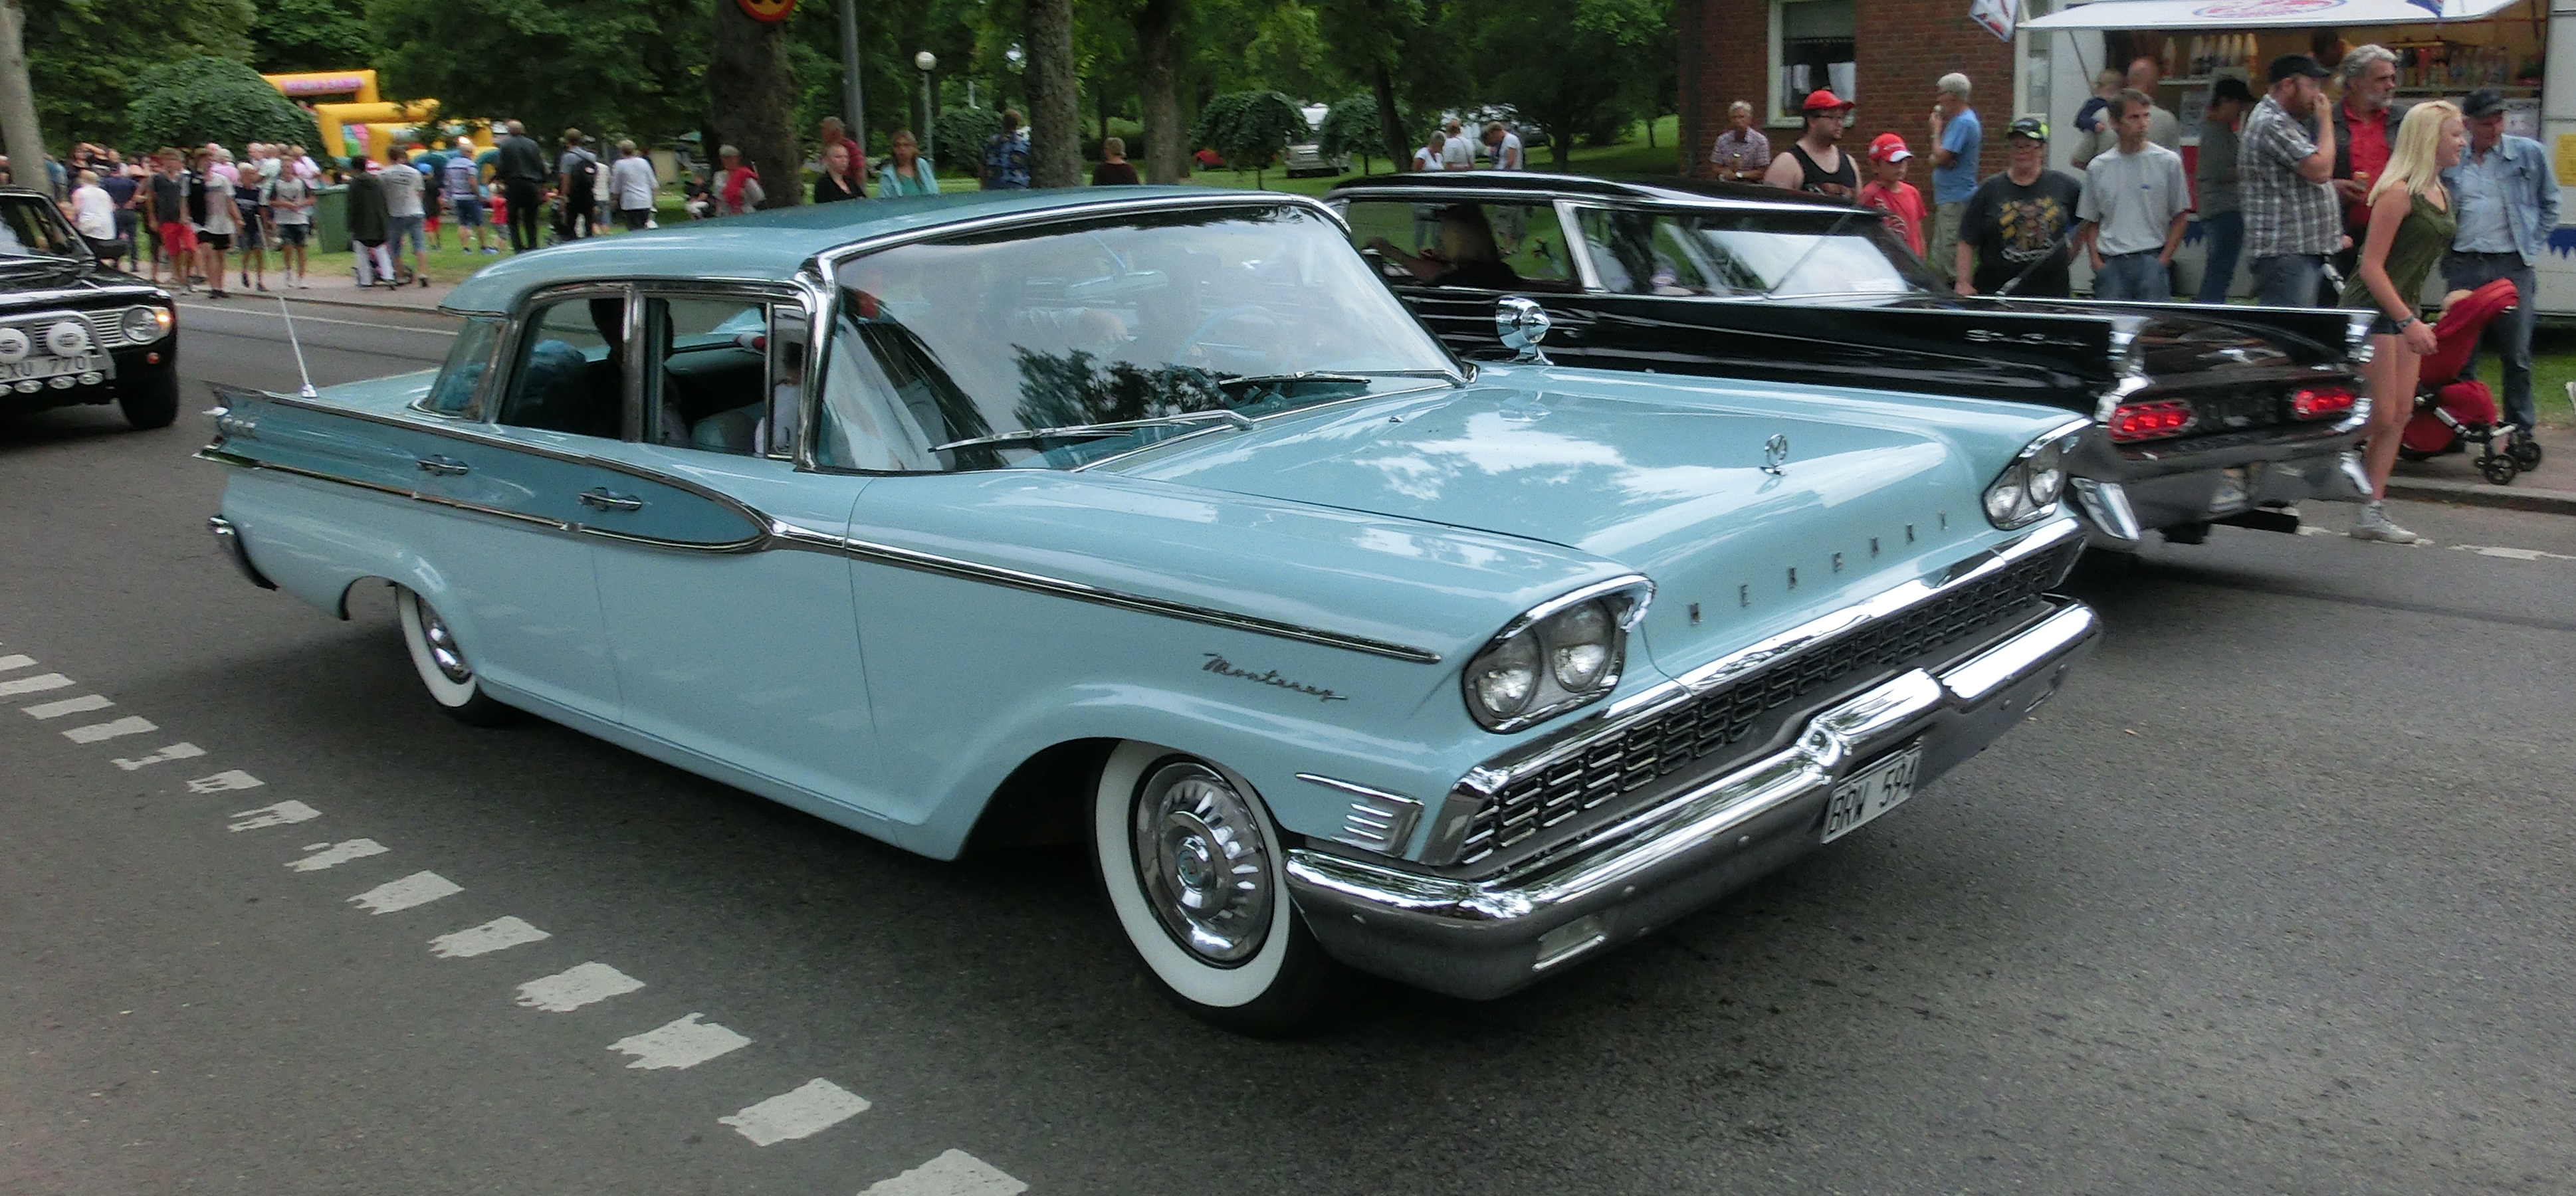 The Park Lane Hotel Piccadilly London Wj Bx